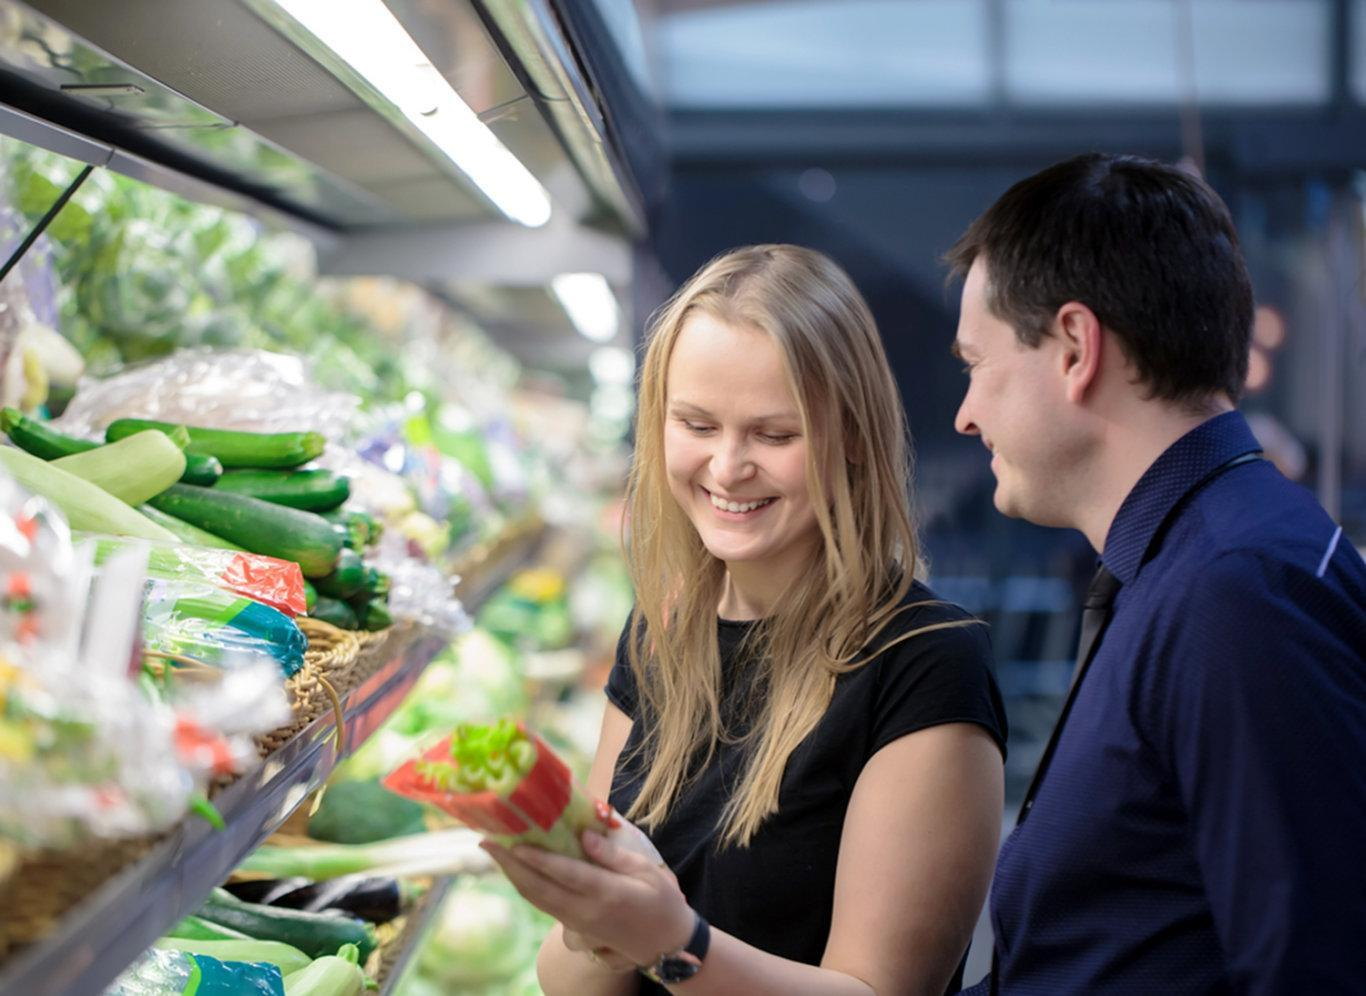 Two customers grocery shopping and laughing satisfied from their experience